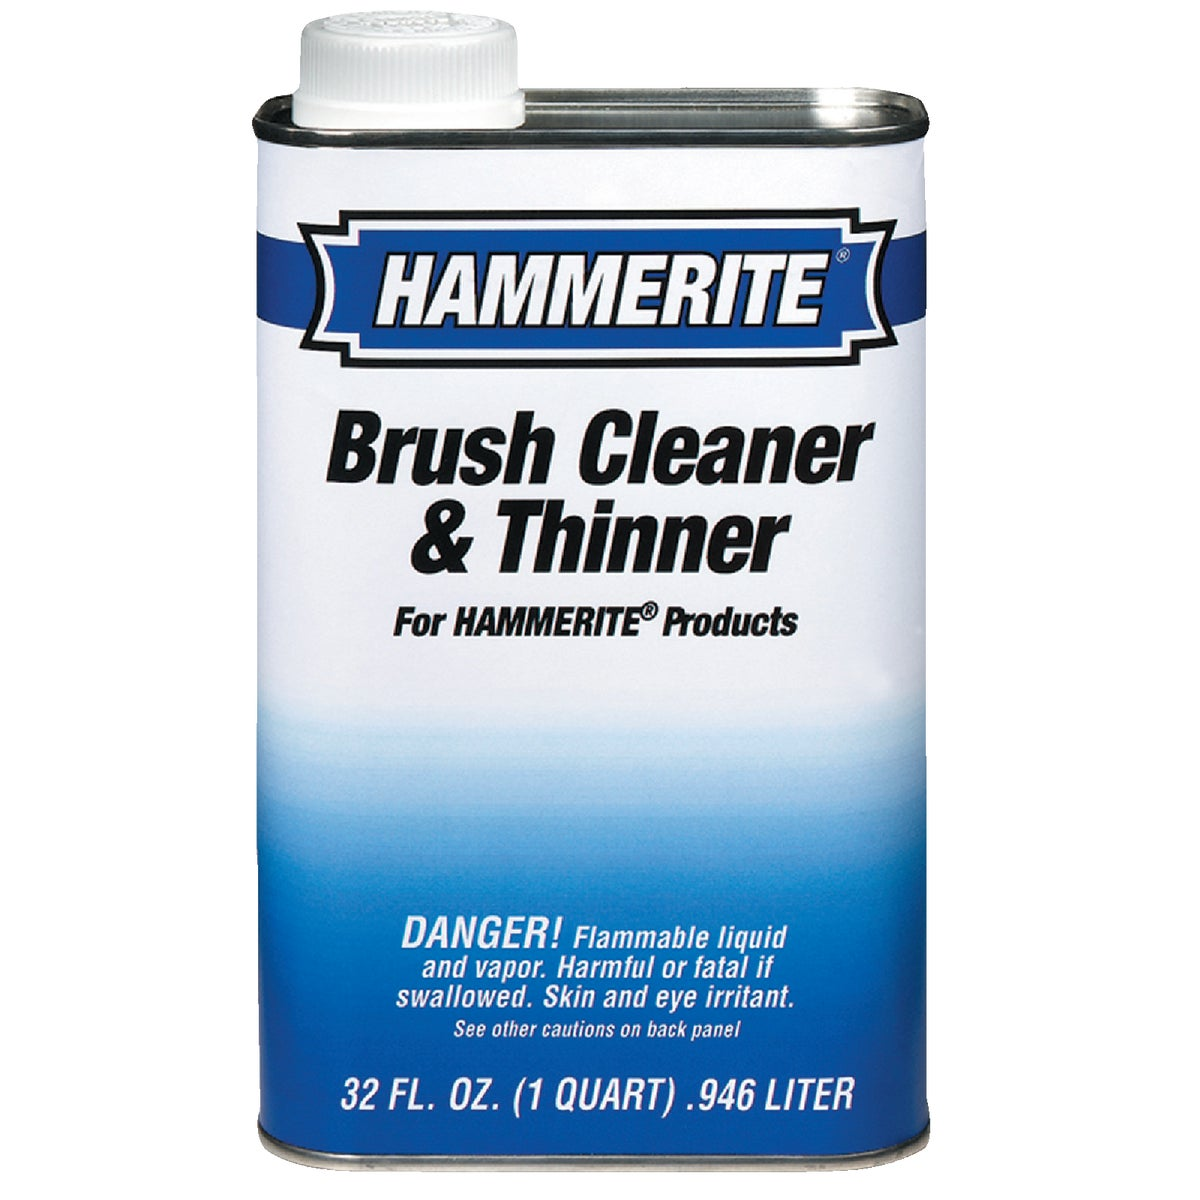 HAMMERED PAINT THINNER